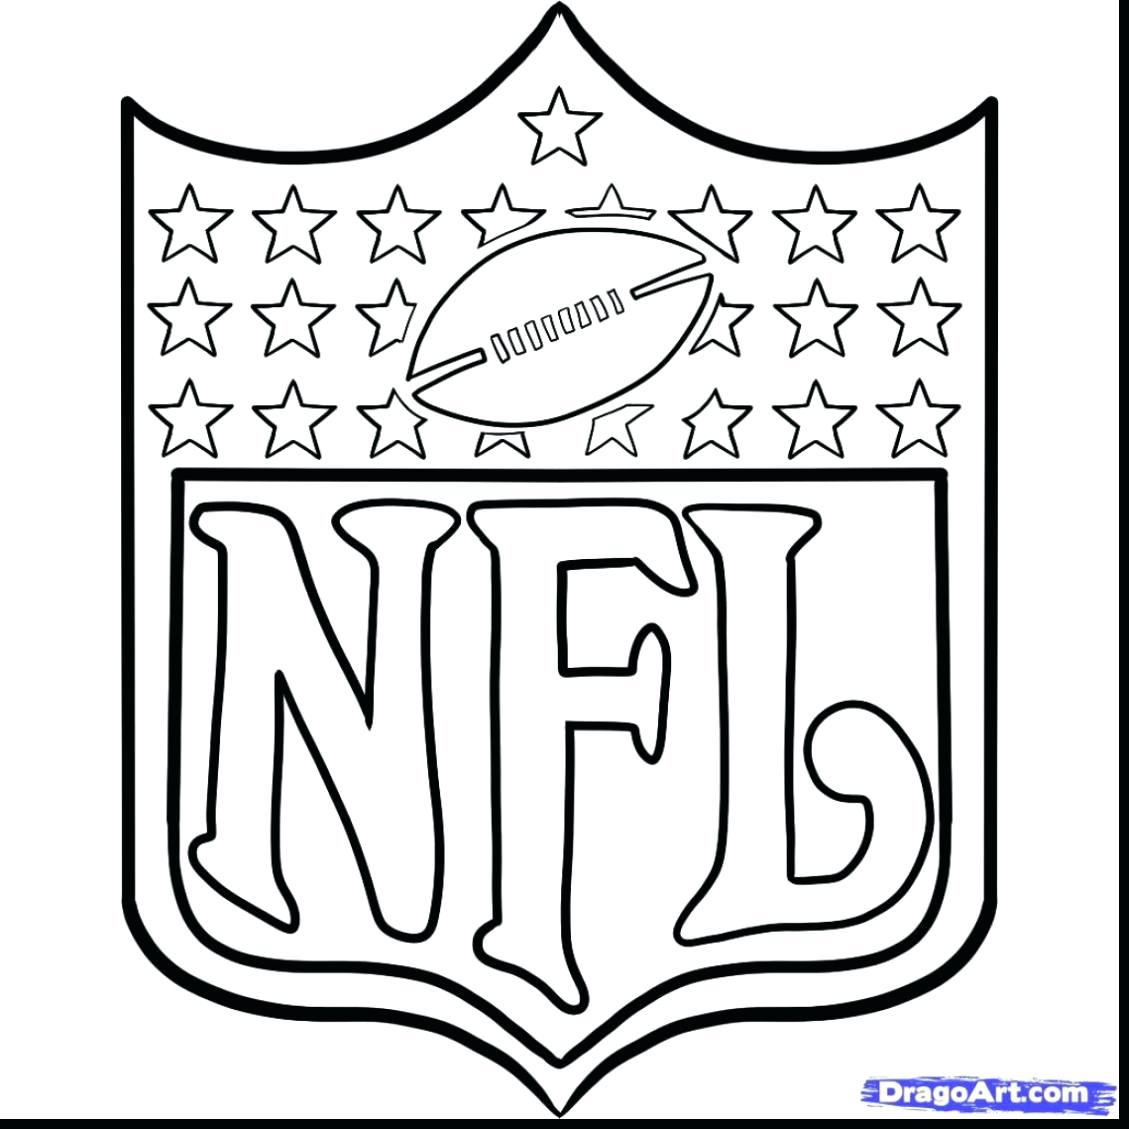 Introducing Coloring Pages S Logo Page Com Seahawk Printable - Free Printable Seahawks Coloring Pages